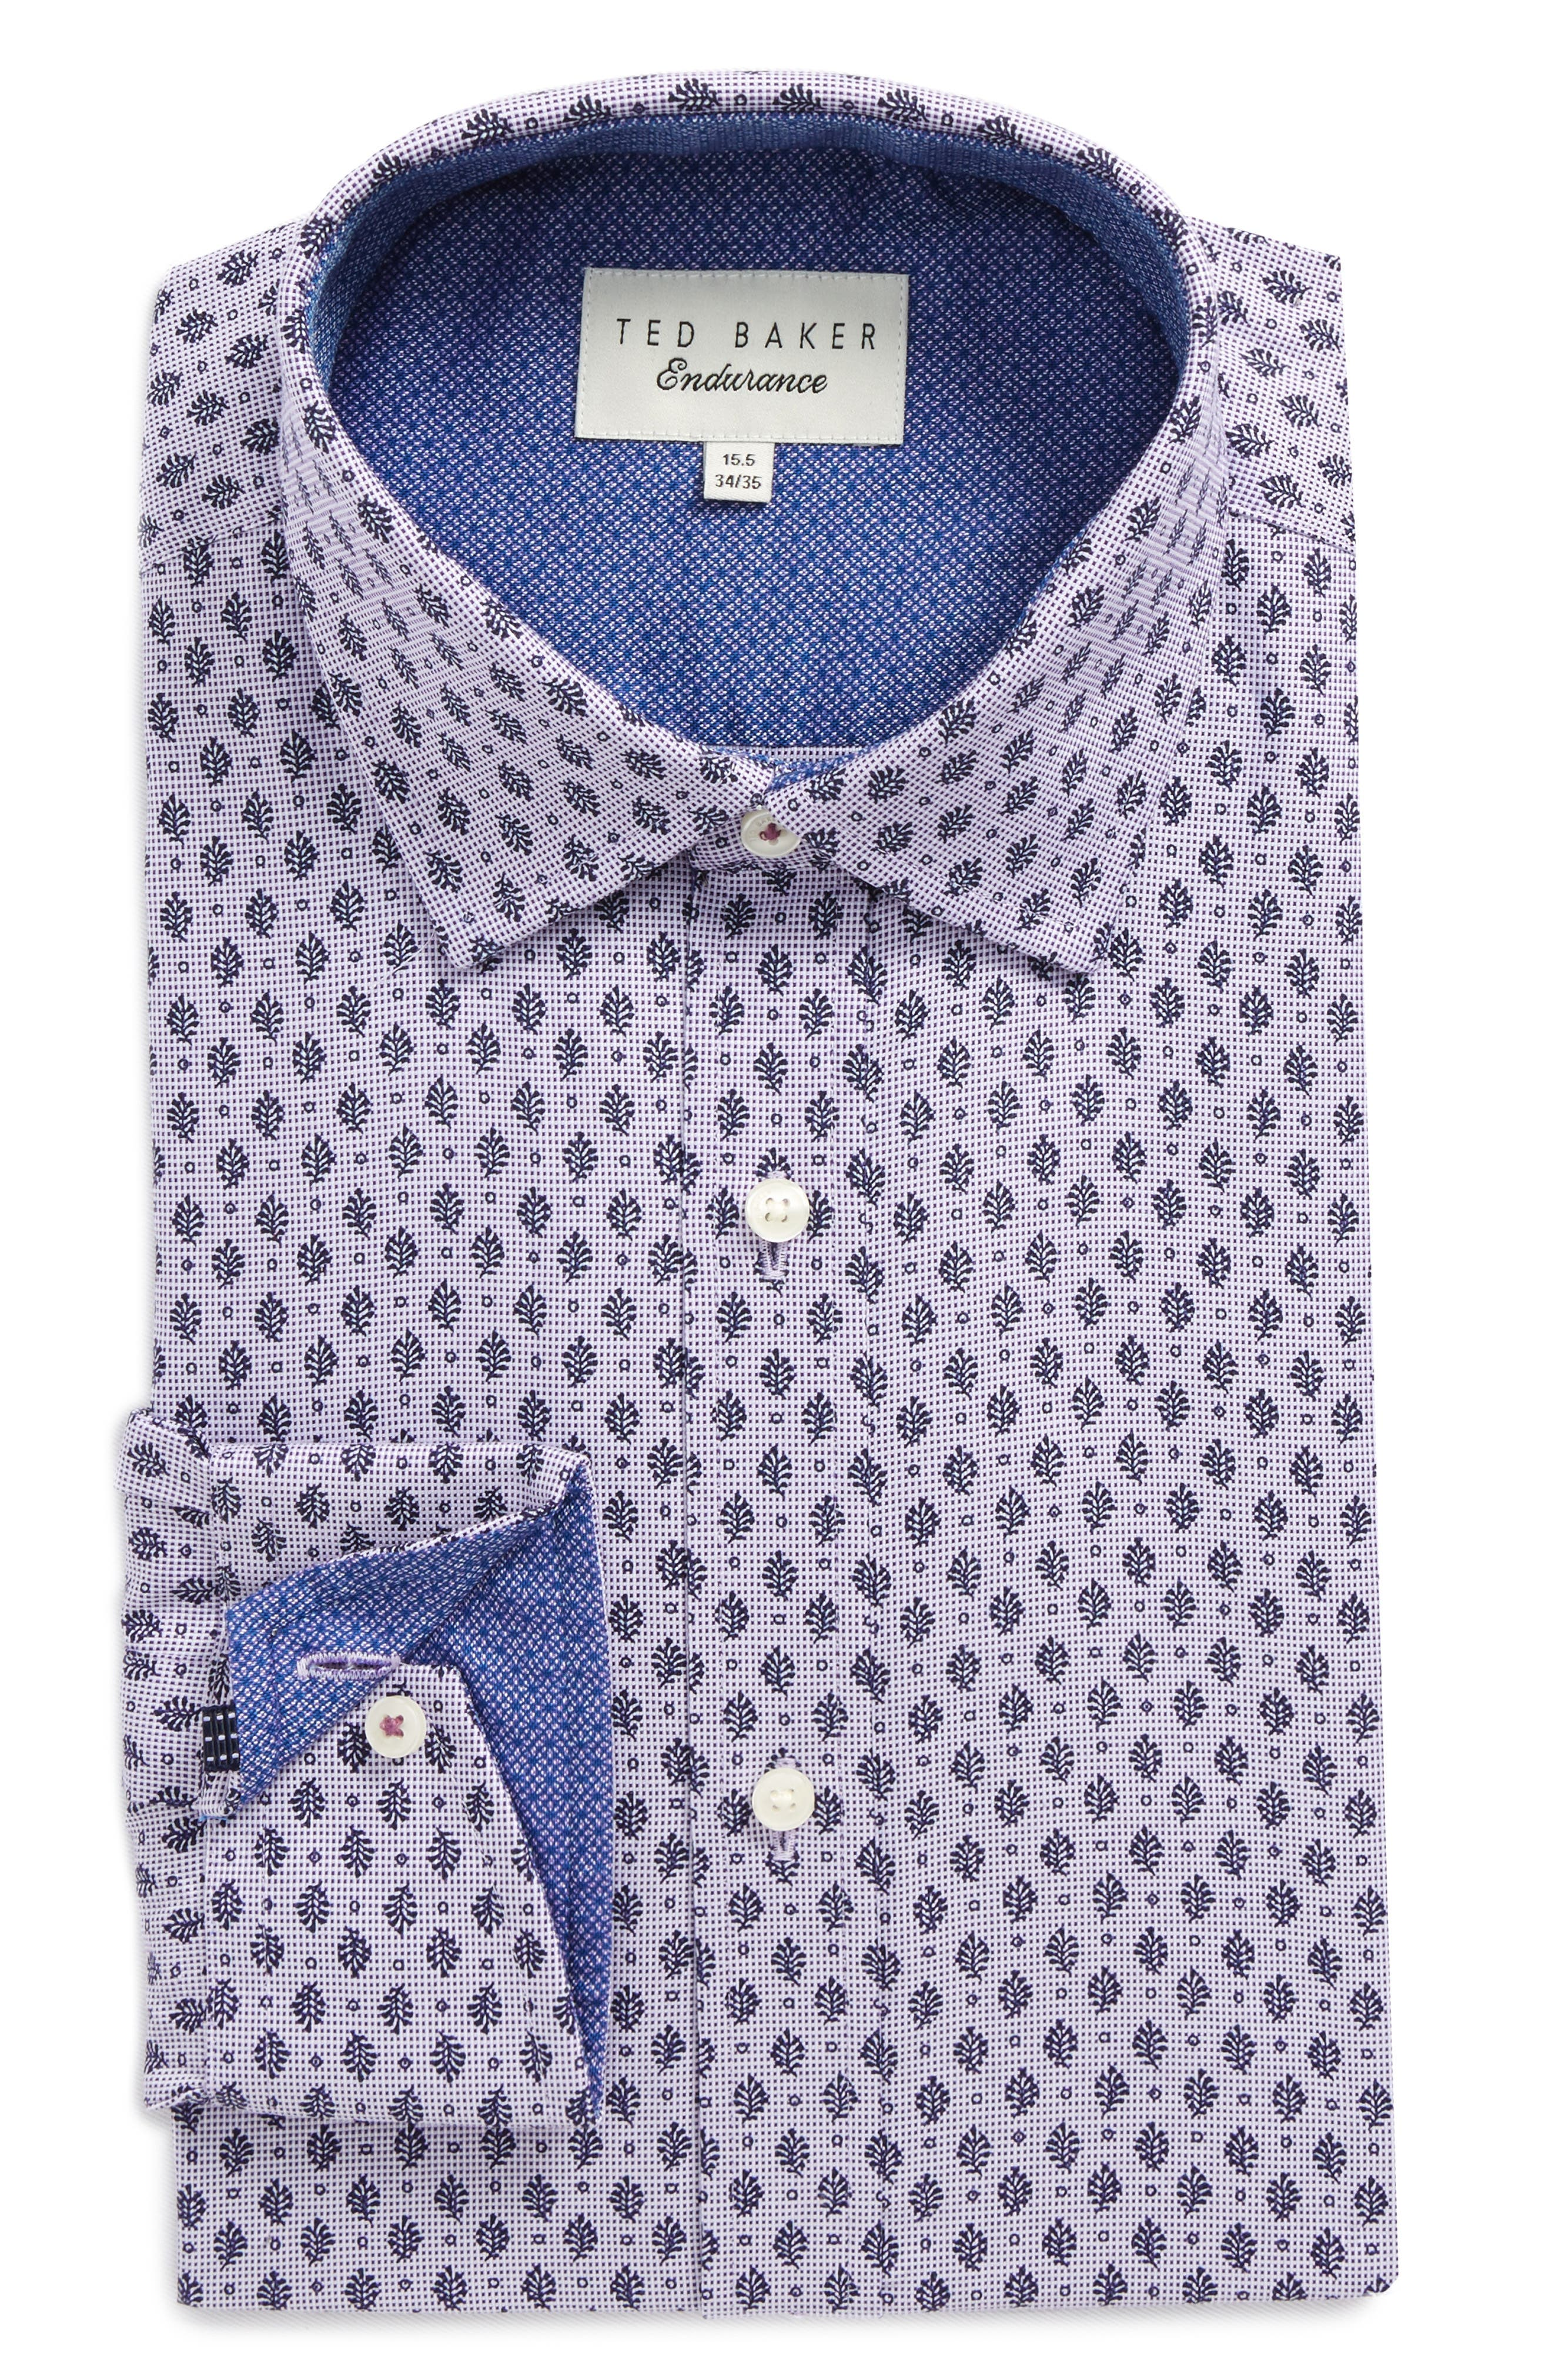 Ted Baker London Endurance Begbie Trim Fit Print Dress Shirt